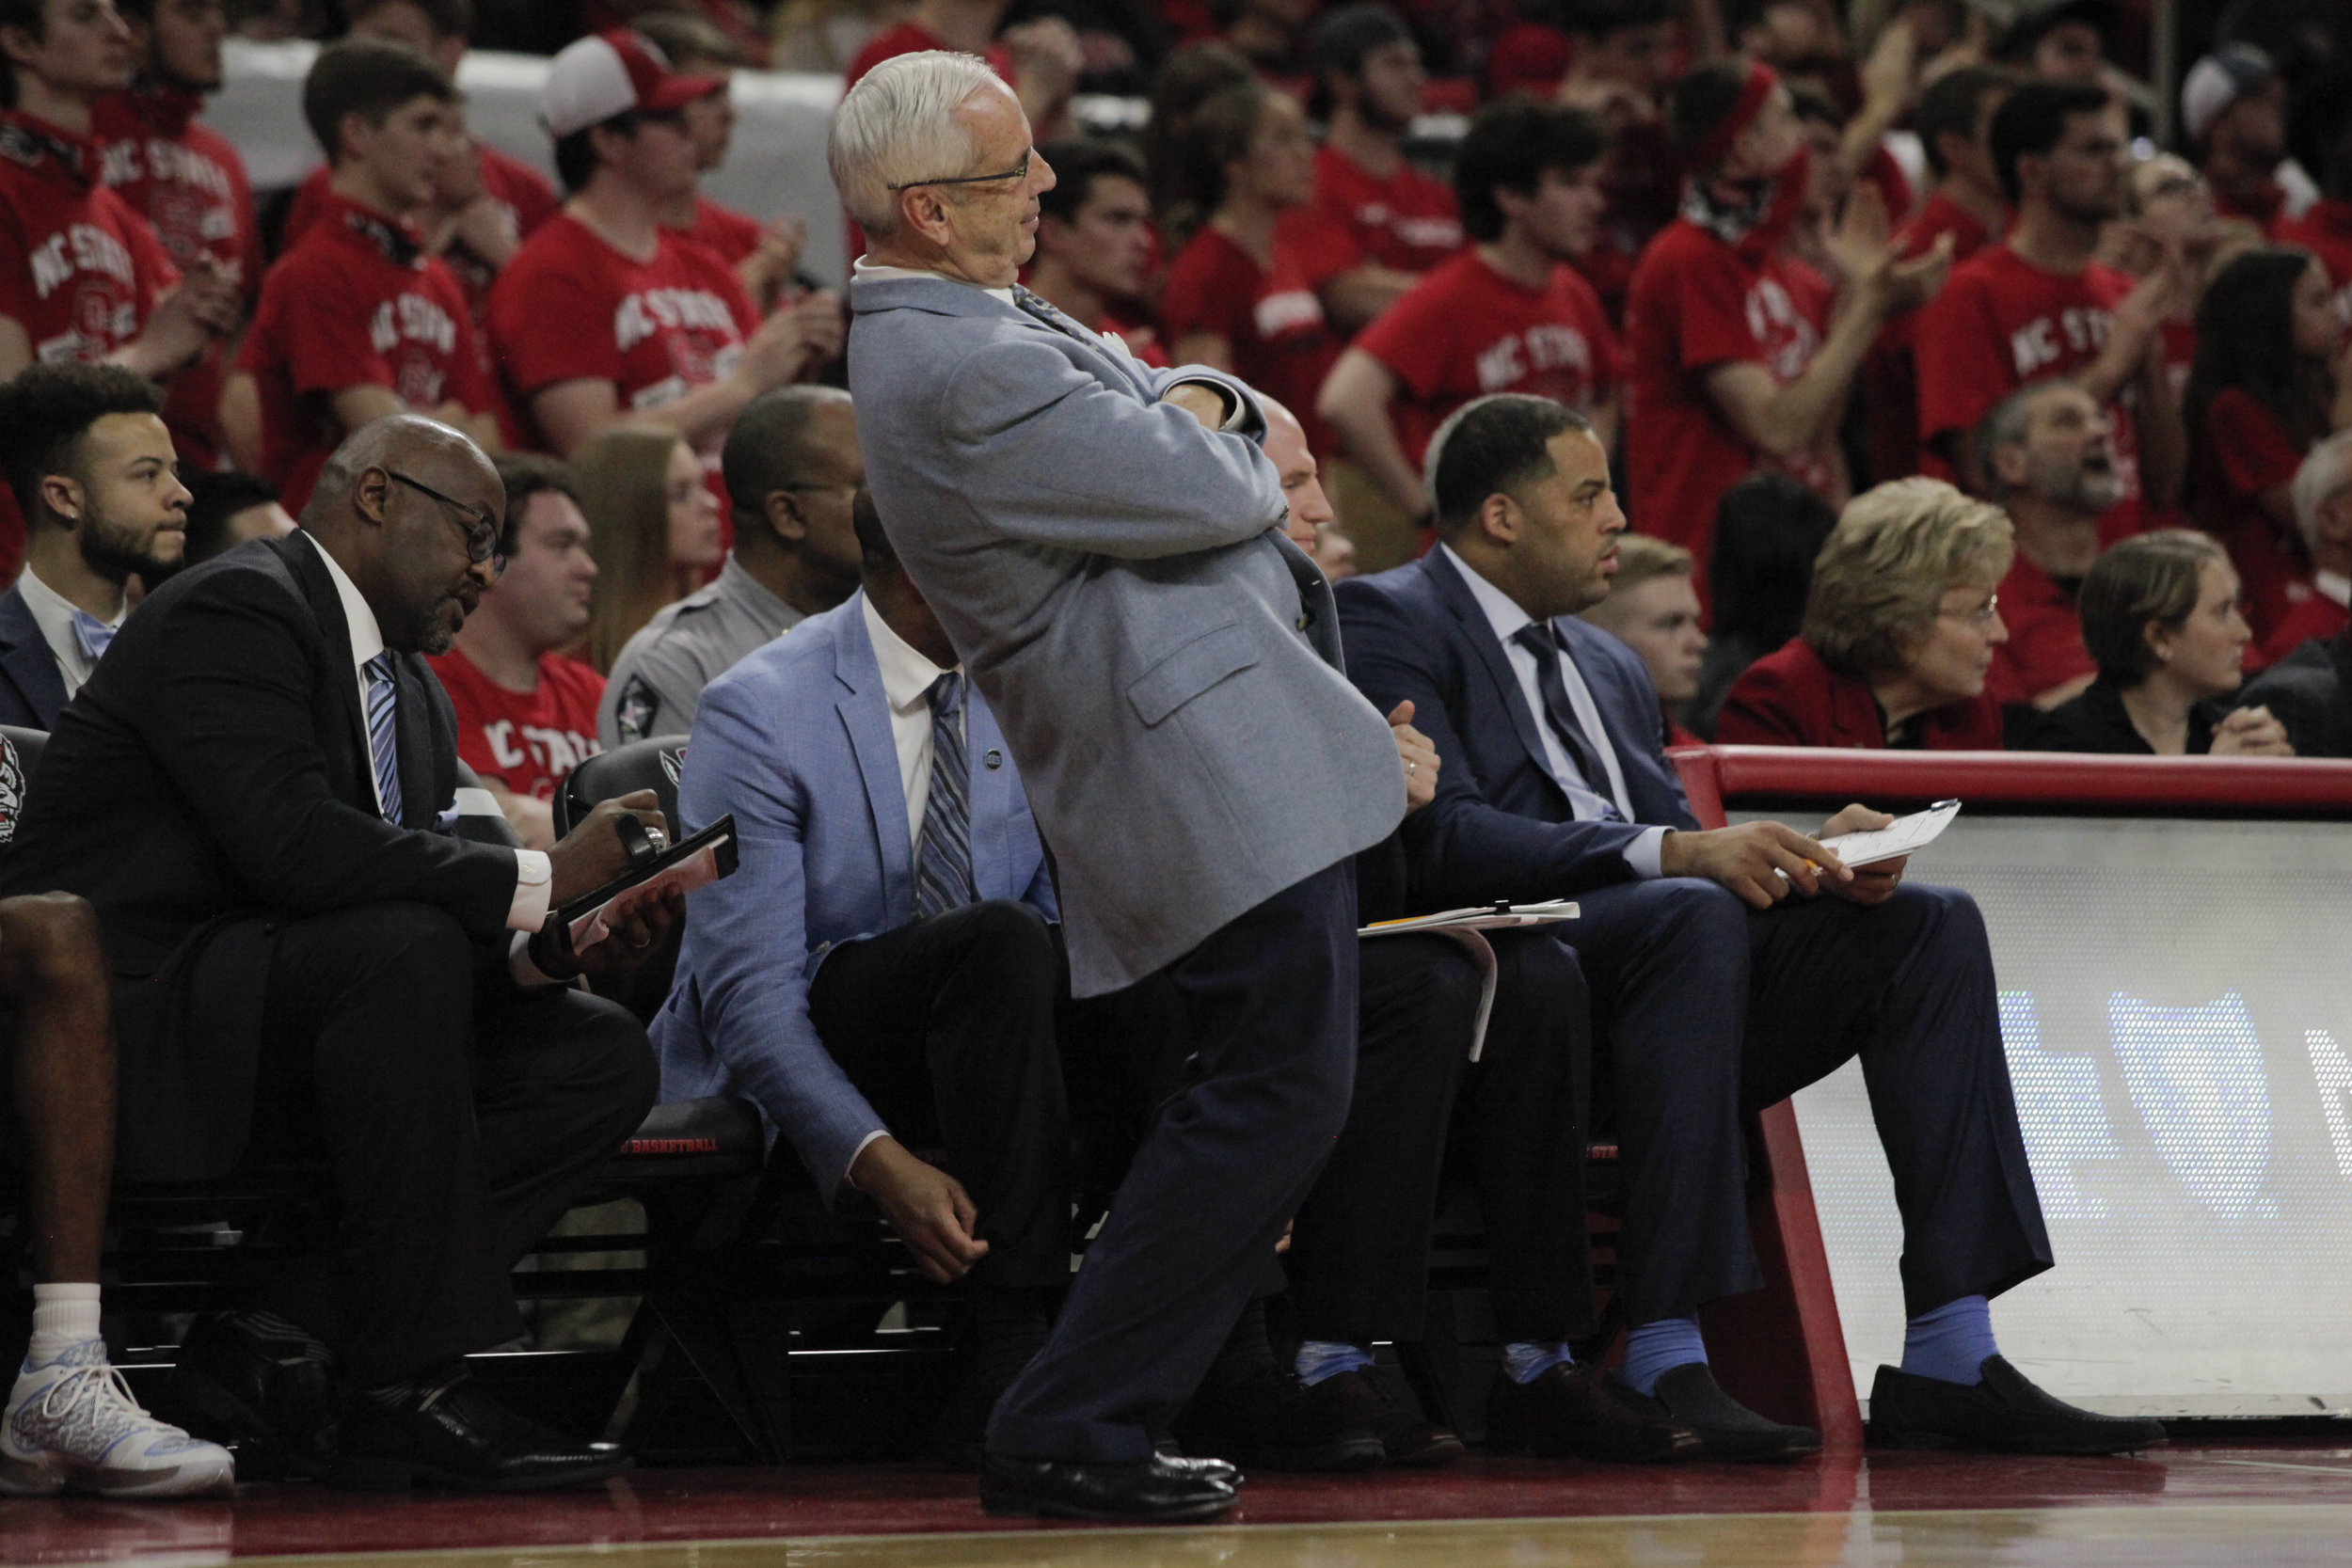 UNC head coach Roy Williams leans back after Theo Pinson misses a free throw during the UNC vs. NC State game at PNC Arena.